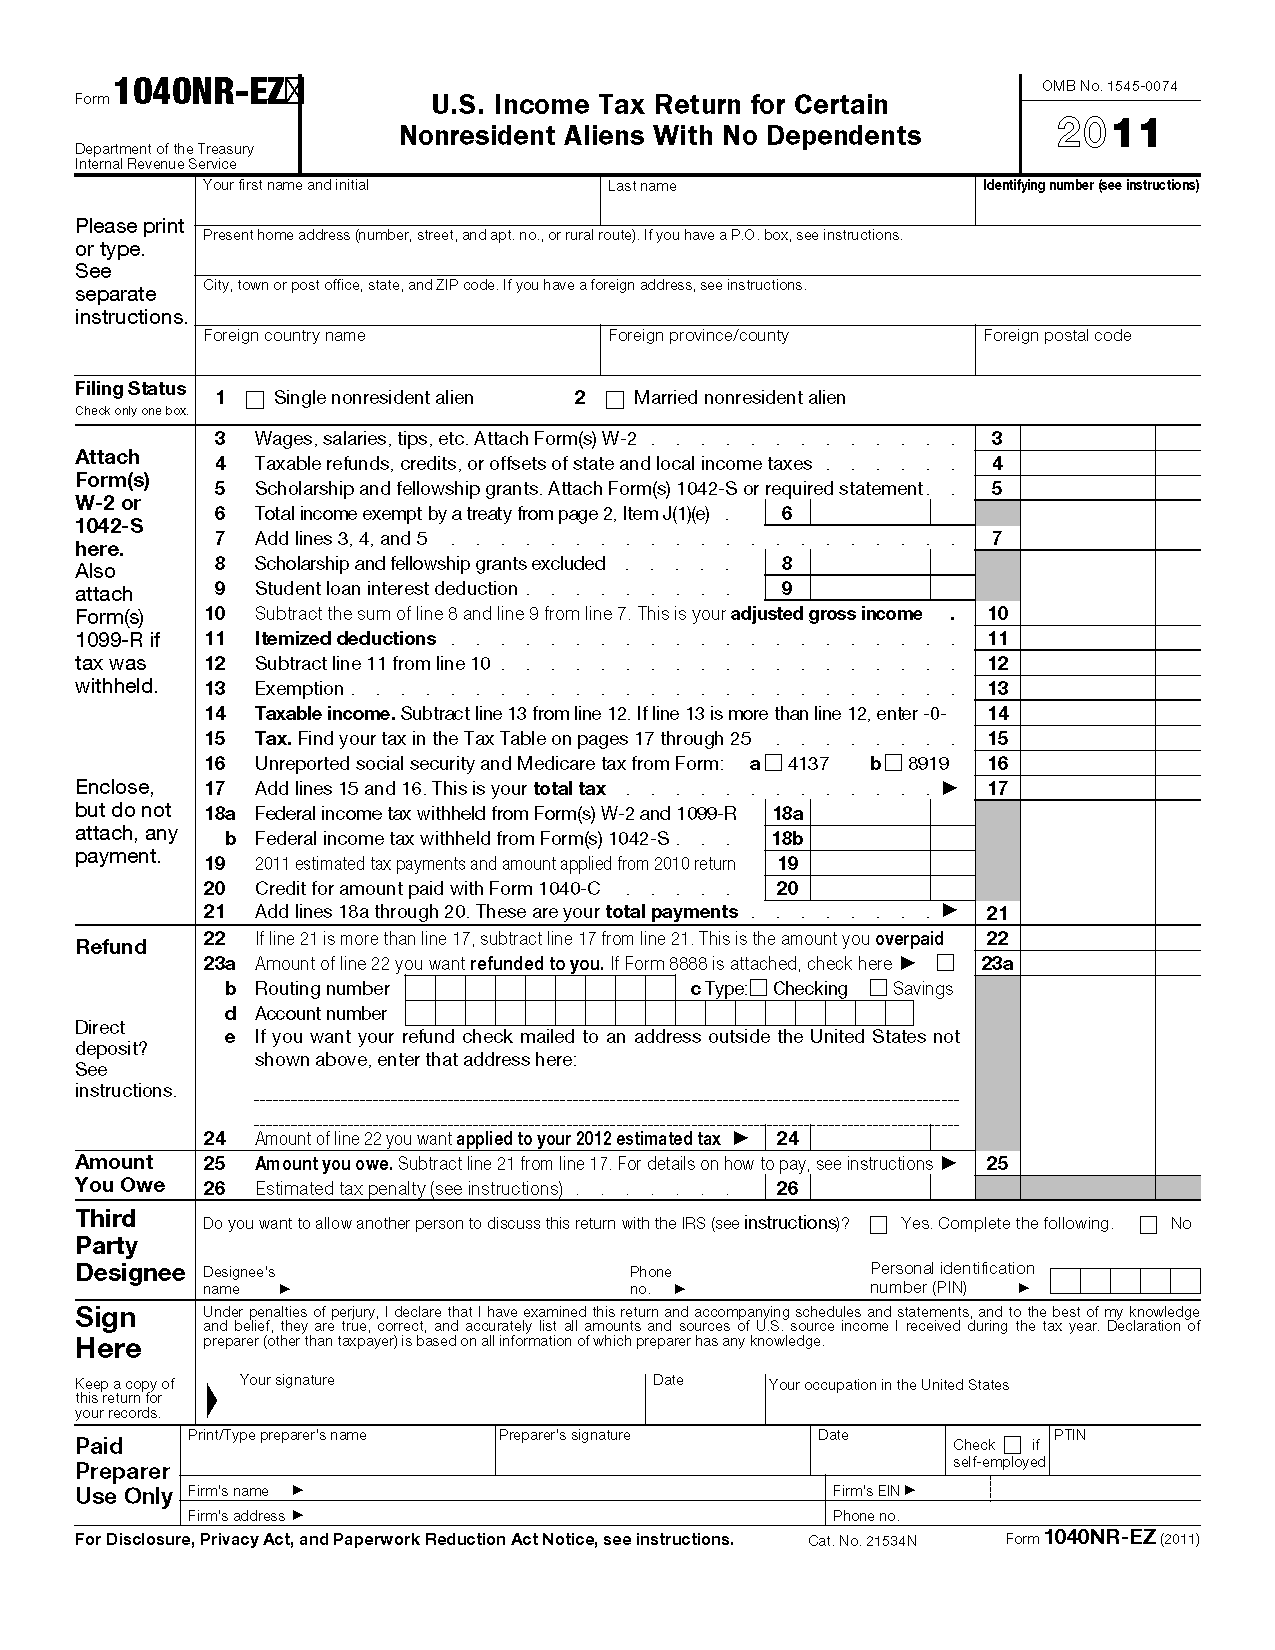 irs eic worksheet worksheets kristawiltbank free printable worksheets and activities. Black Bedroom Furniture Sets. Home Design Ideas